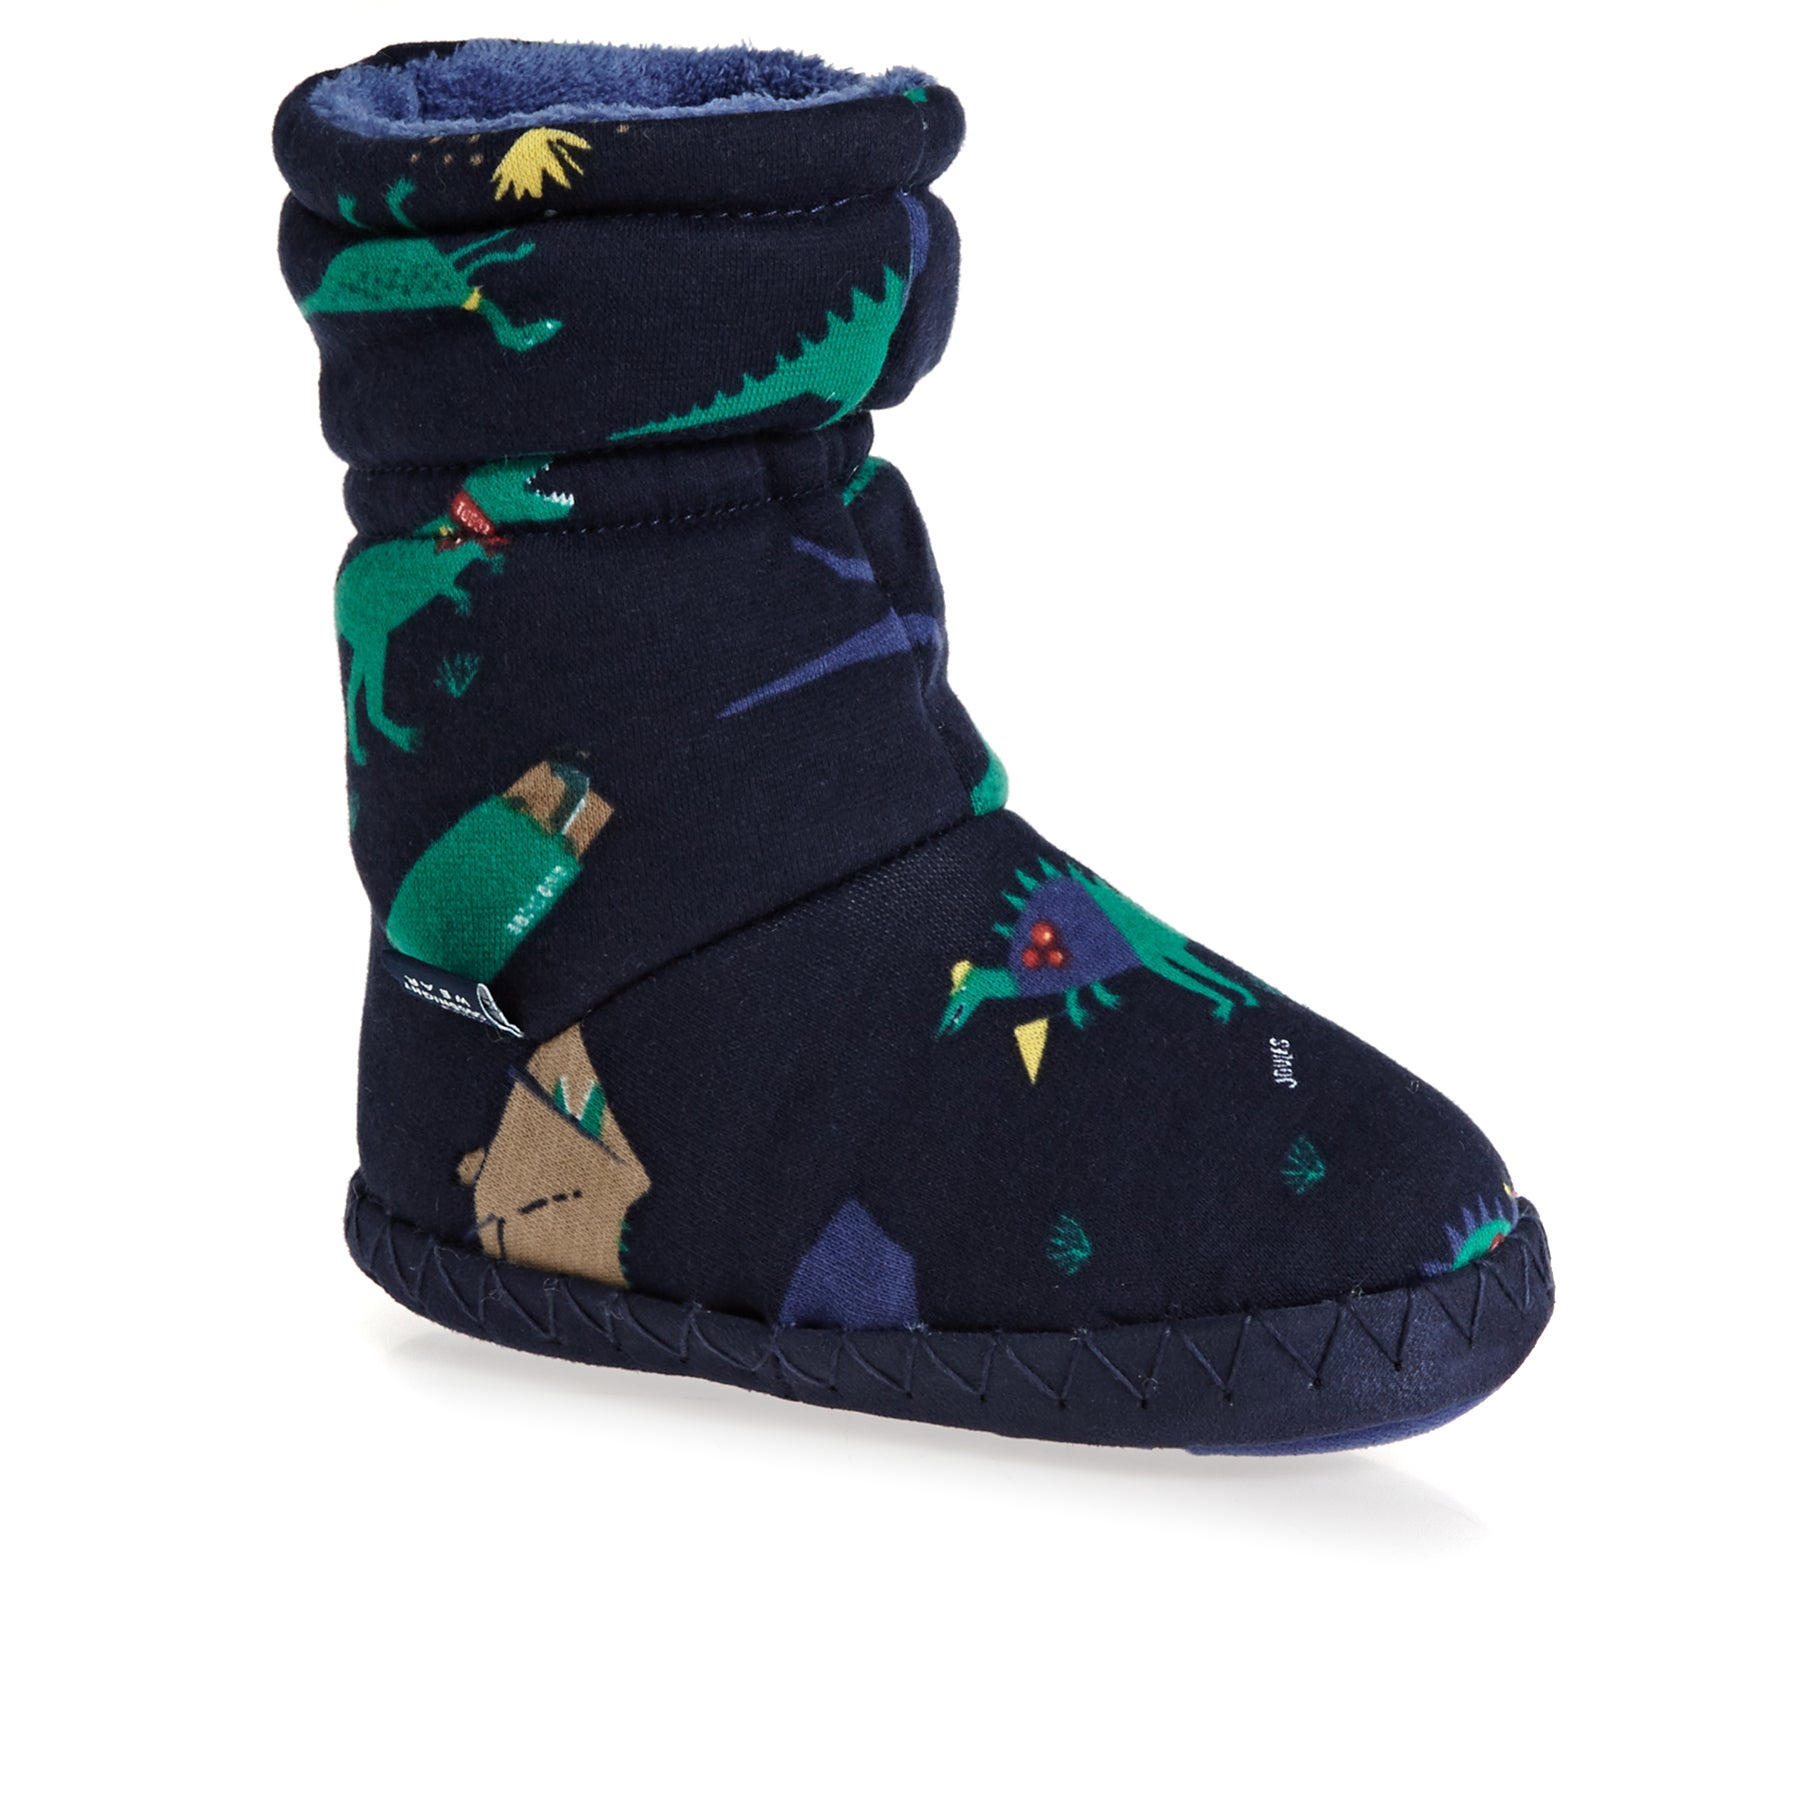 Joules Padabout Slippers - French Navy Dinosaur